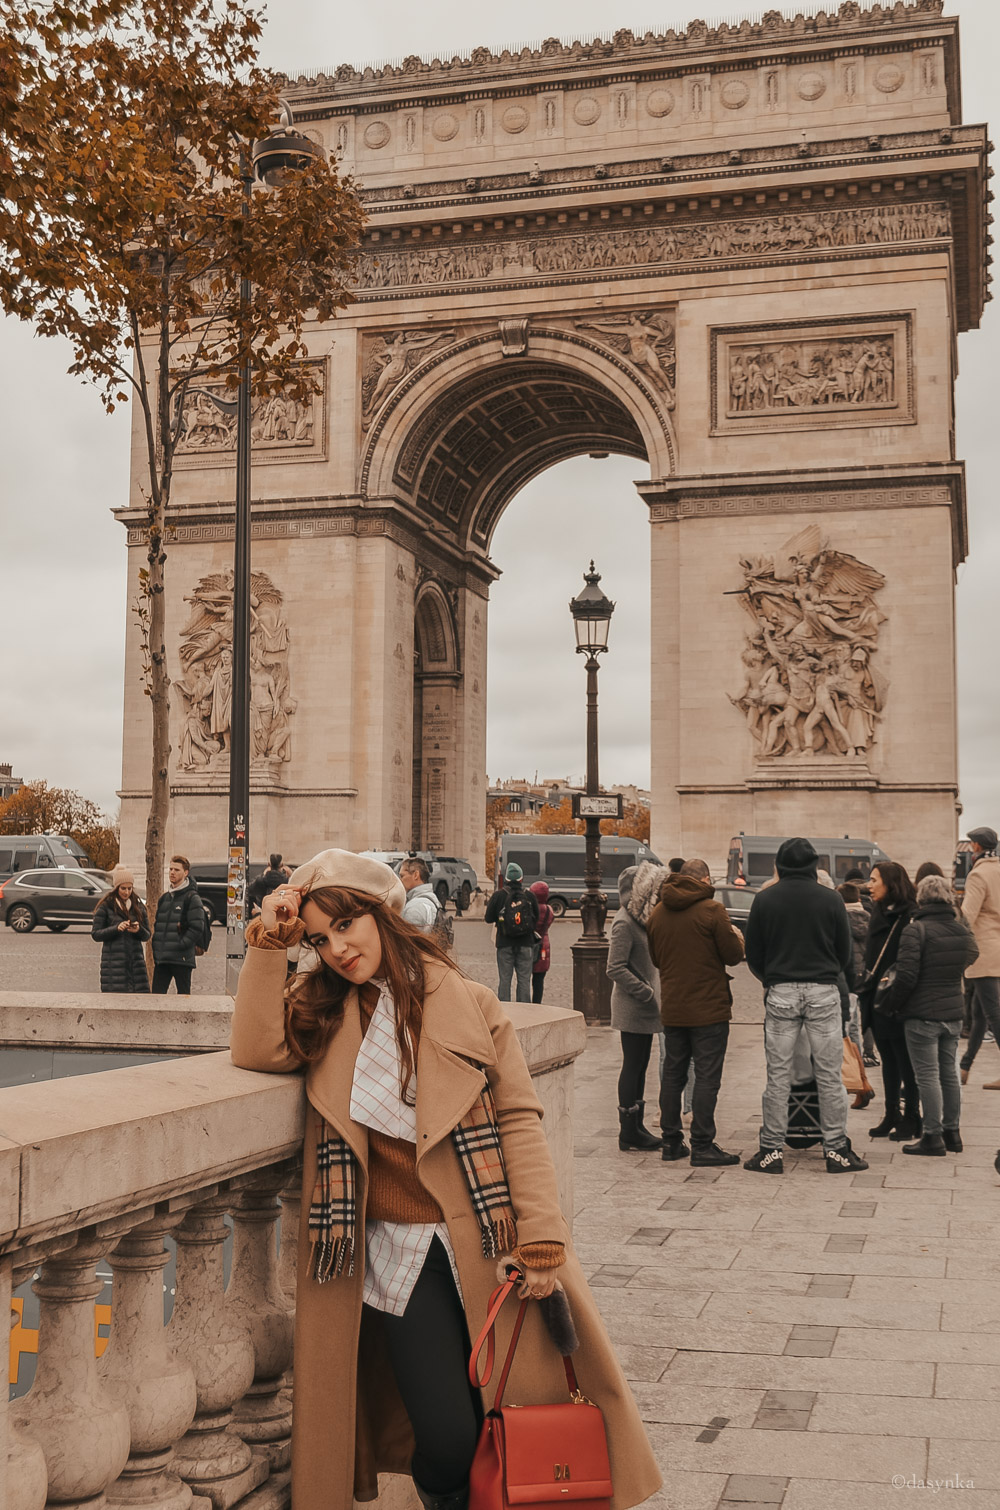 dasynka-fashion-blog-blogger-influencer-inspo-inspiration-shooting-model-globettrotter-travel-girl-lookbook-instagram-instagrammer-long-hair-street-style-casual-italy-lifestyle-outfit-poses-look-ootd-ideas-elegant-italian-paris-coat-camel-burberry-hat-basque-browne-boots-black-shirt-bow-sweater-cozy-parisien-parisienne-parisian-neutral-beige-white-scarf-france-tour-eiffel-champs-elysees-arc-de-triomphe